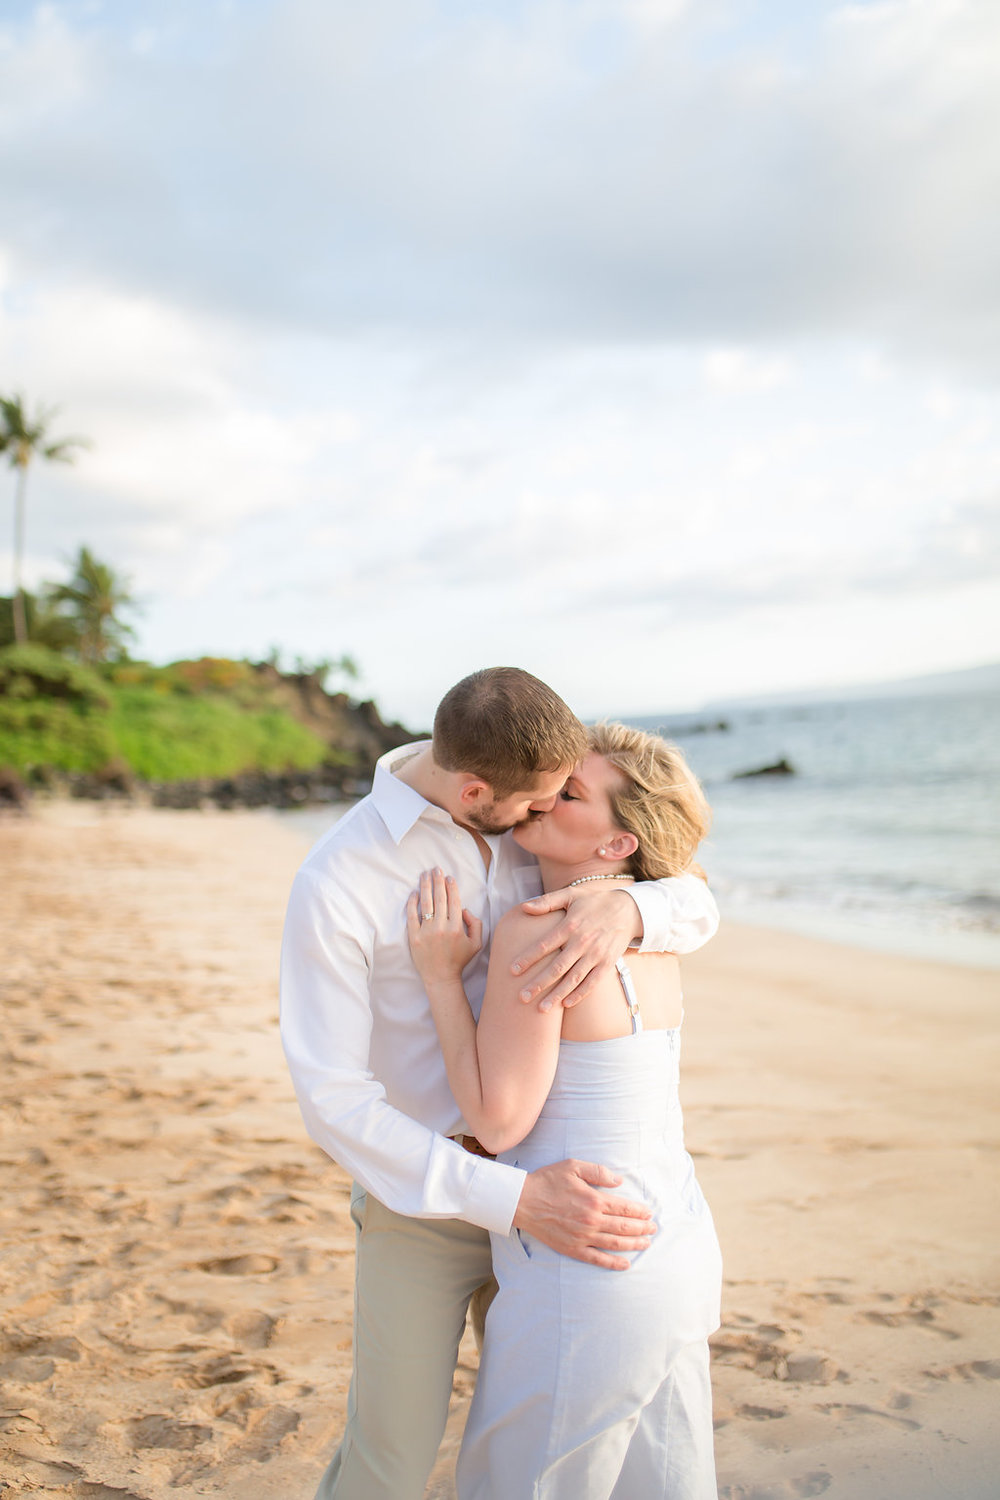 Maui Beach Engagement Photos - Vanessa Hicks Photography -- Wedding Blog - The Overwhelmed Bride